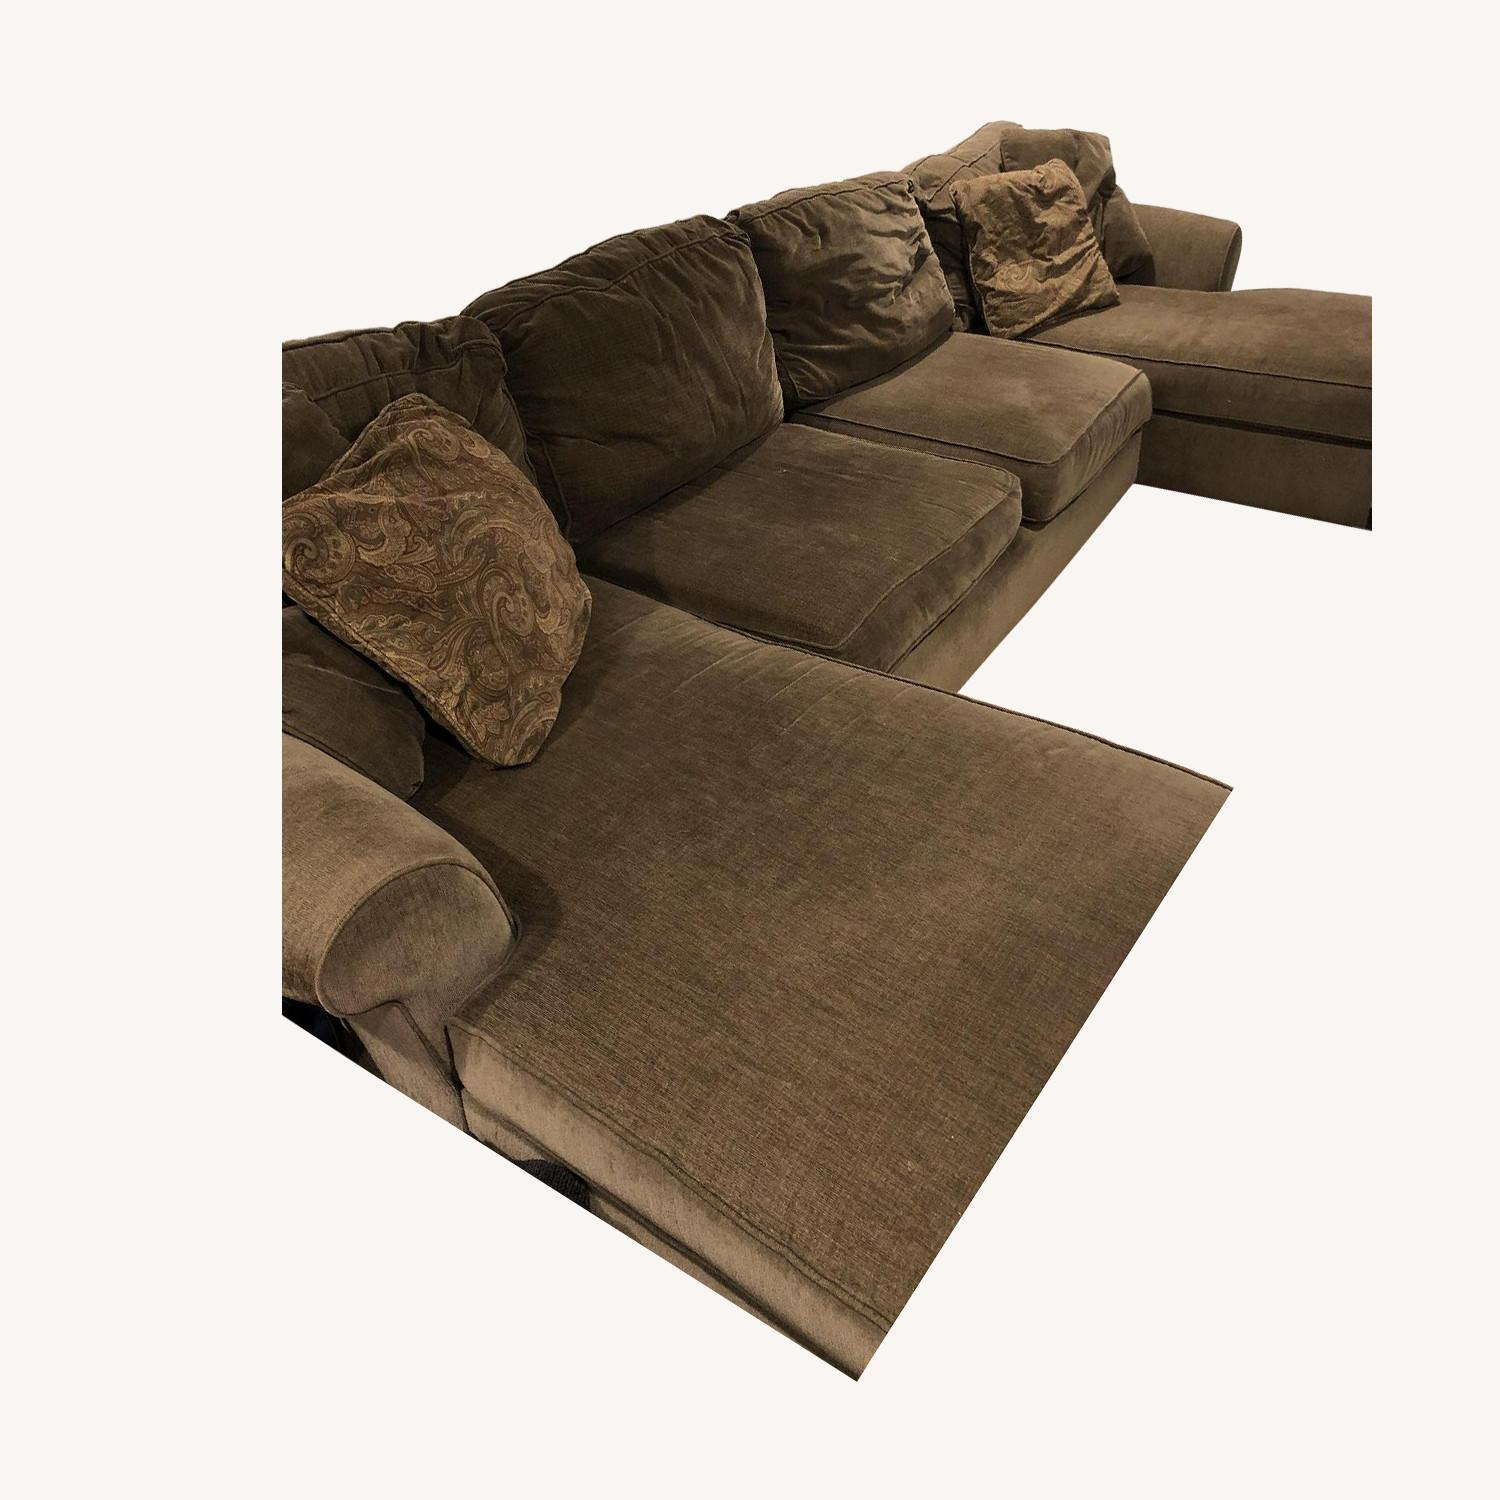 Raymour & Flanigan 3-Piece Sectional Sofa w/ 2 Chaises - image-0